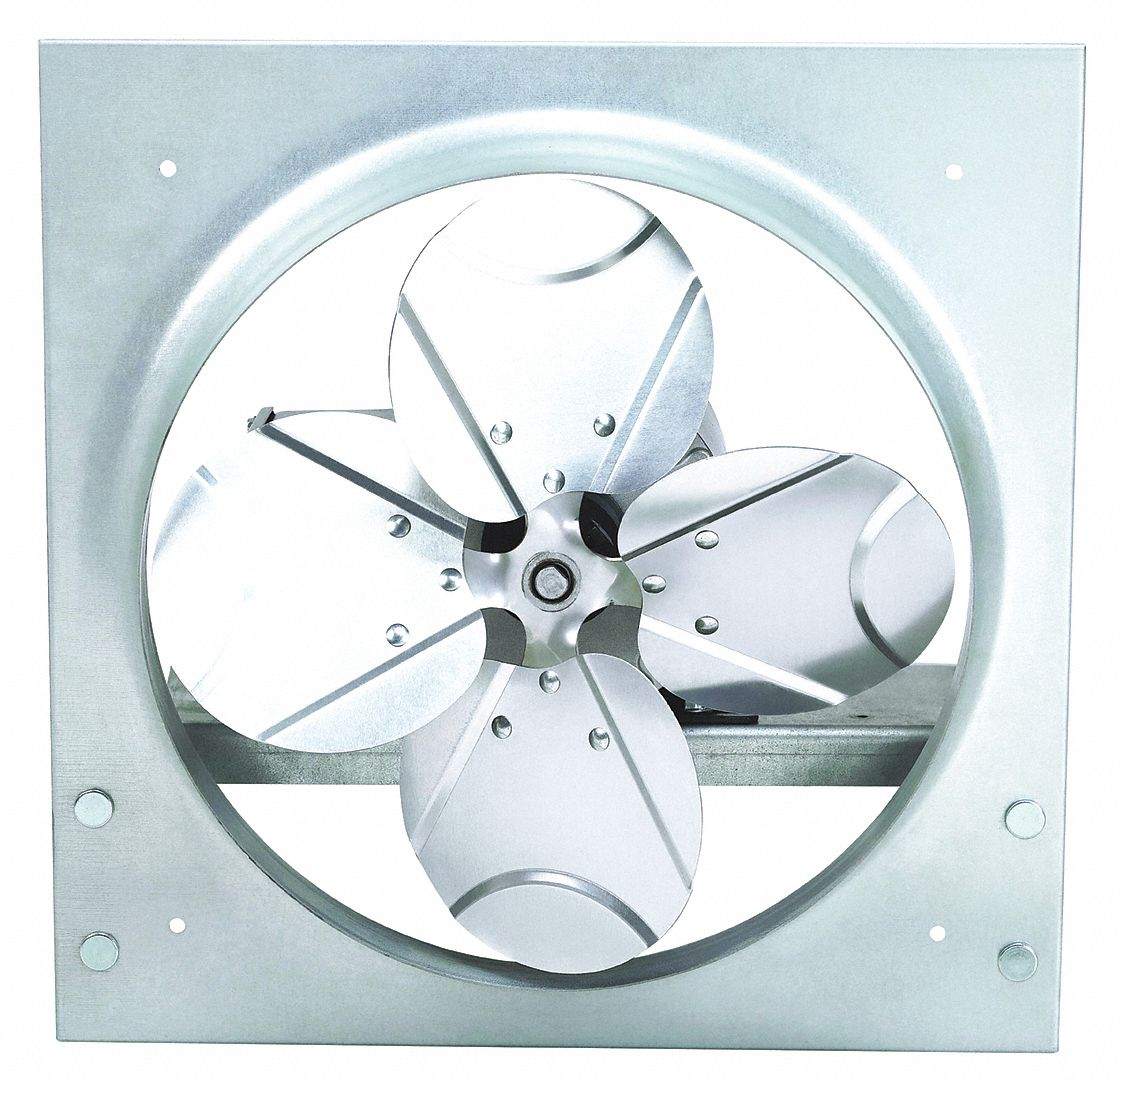 1 4 hphp 115 230v acv direct drive reversible reversible exhaust supply fan